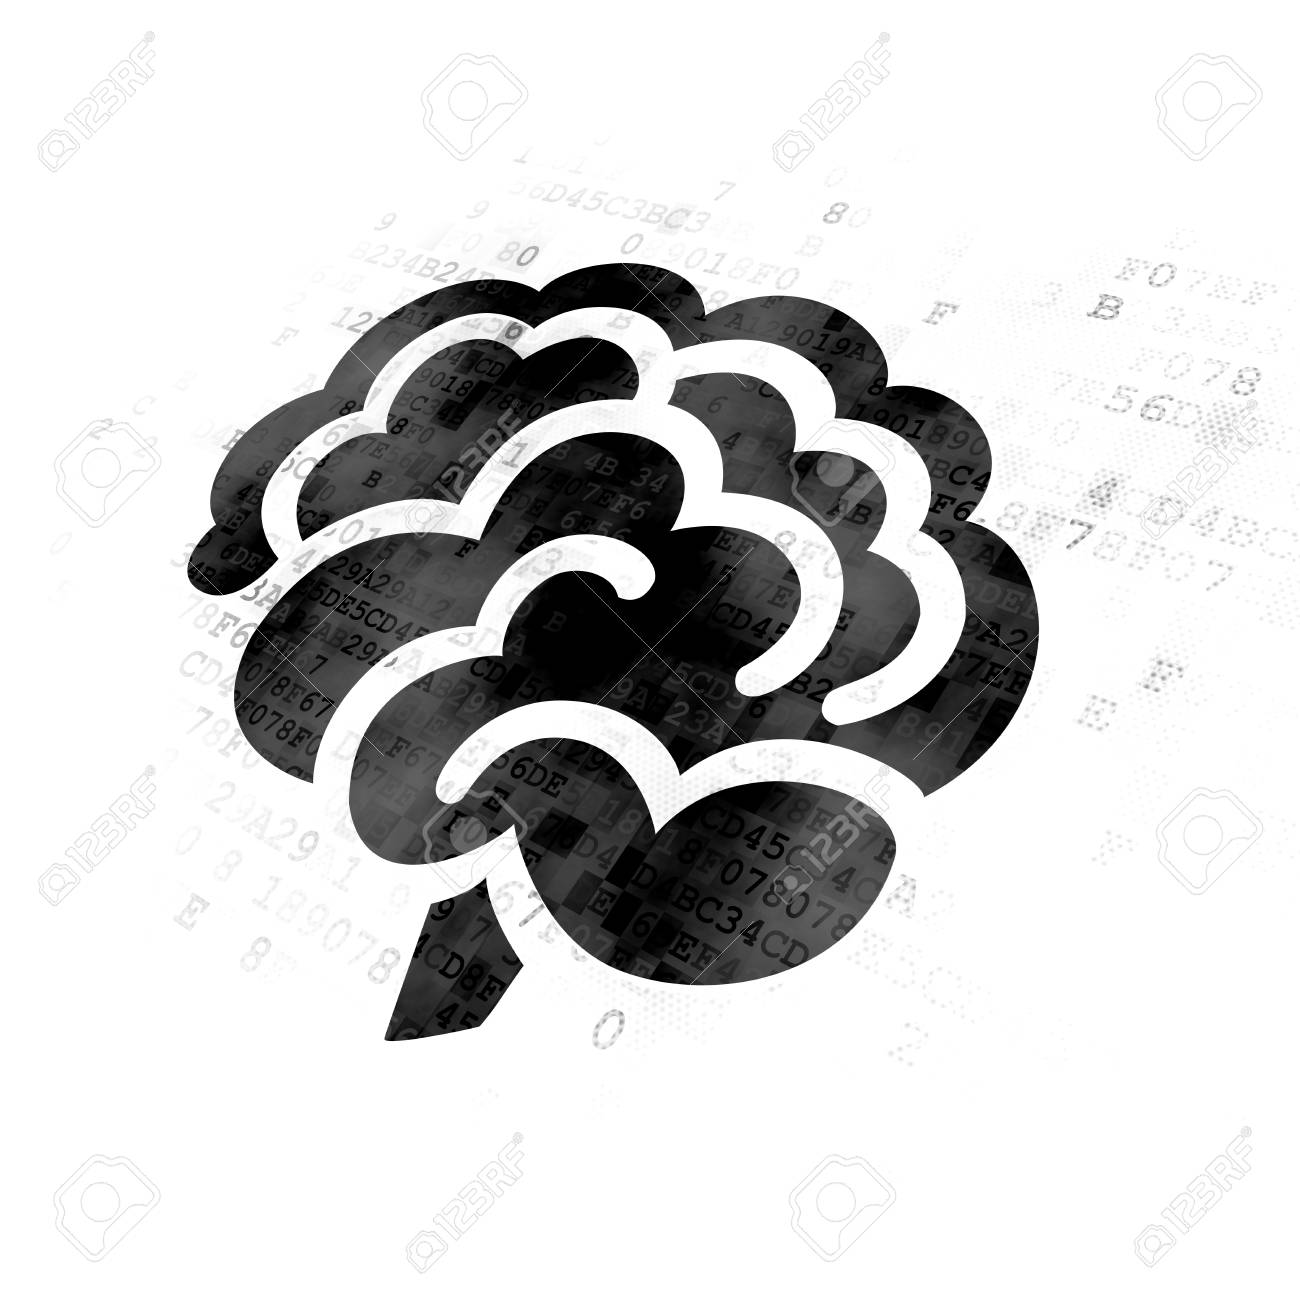 Science concept pixelated black brain icon on digital background science concept pixelated black brain icon on digital background stock photo 80608084 biocorpaavc Images